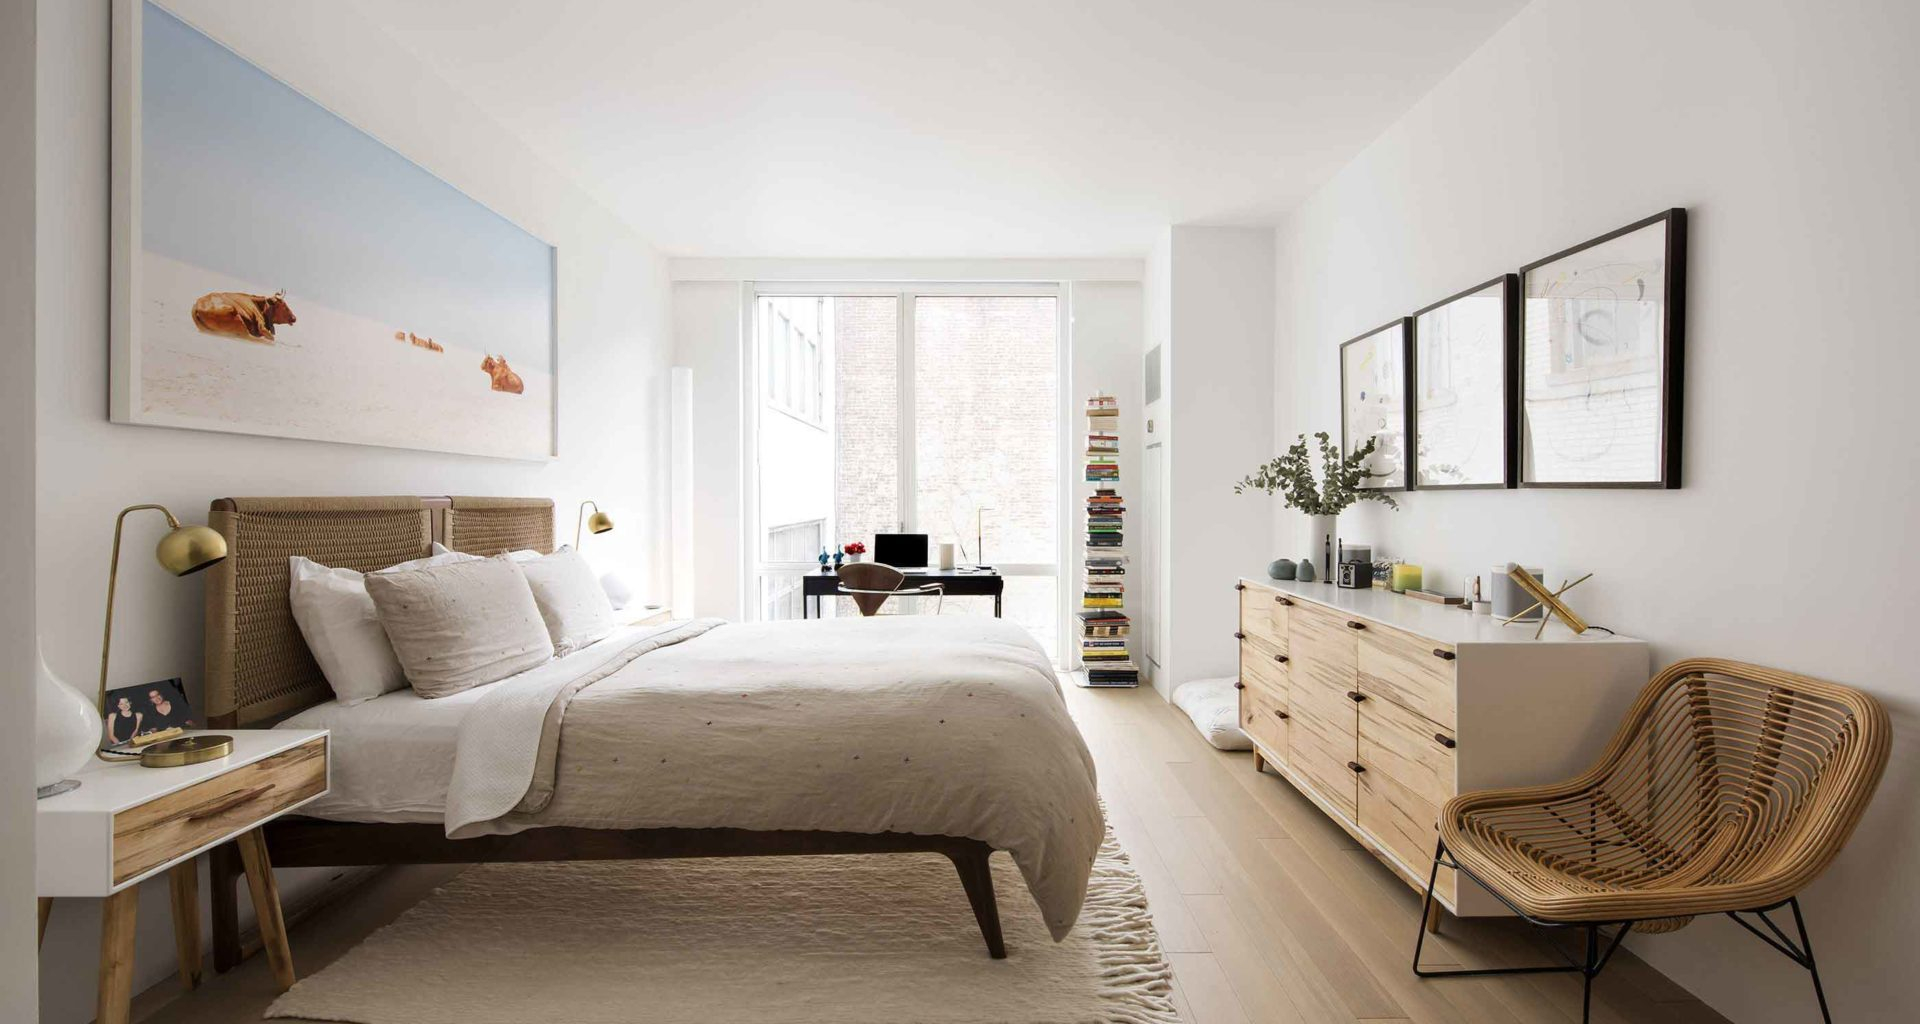 Urban Modern Bedroom Ideas For Your Home pertaining to 13 Smart Ways How to Upgrade Ideas For A Modern Bedroom